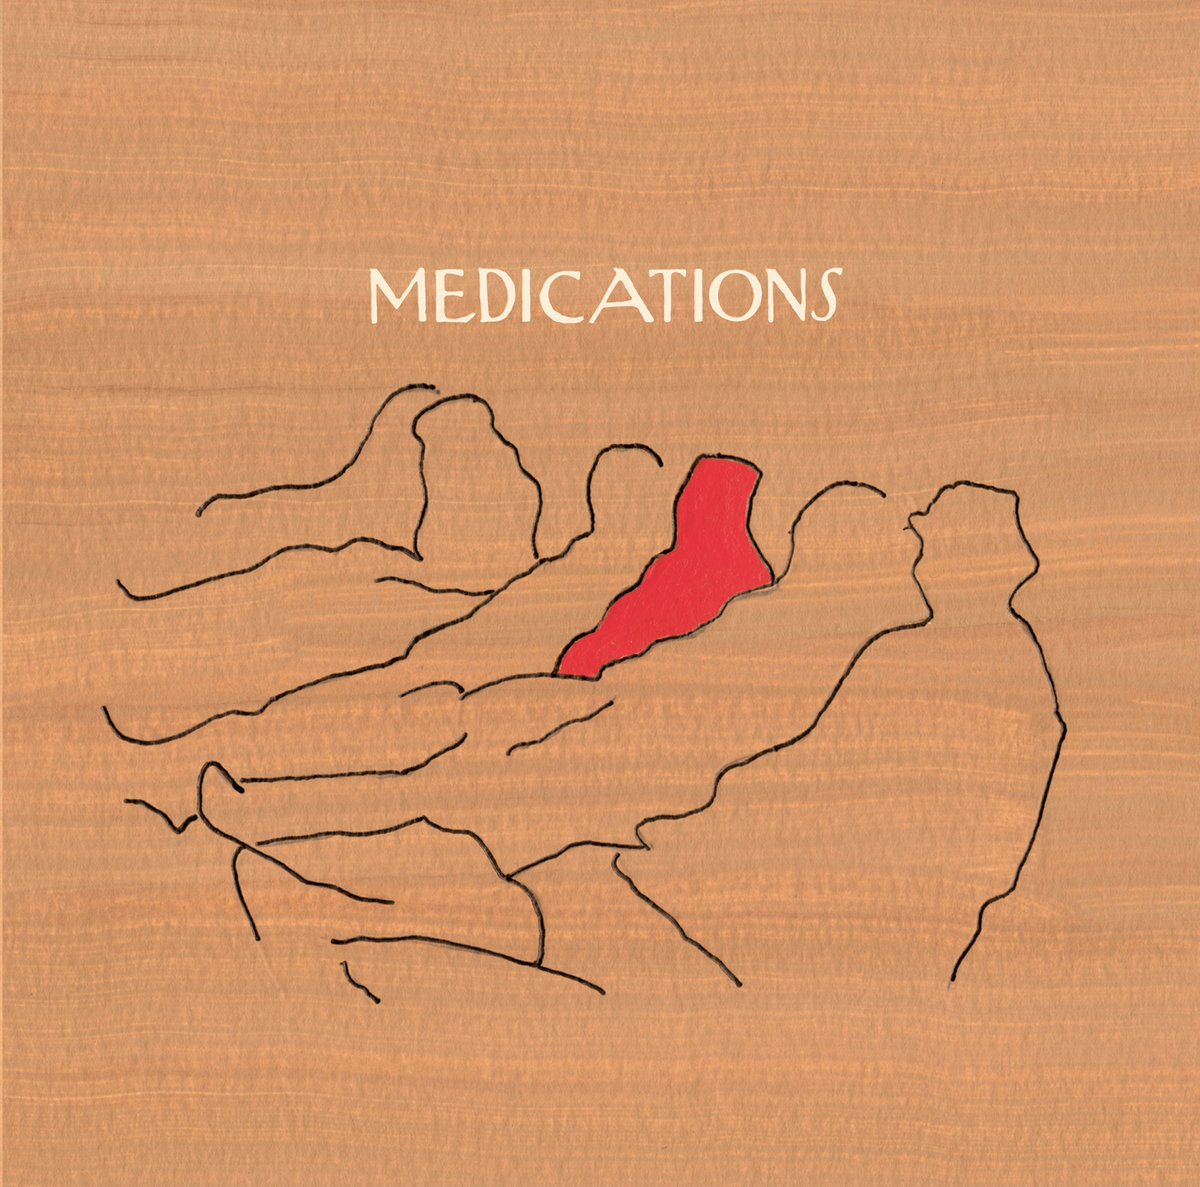 Medications - All Your Favorite People in One Place